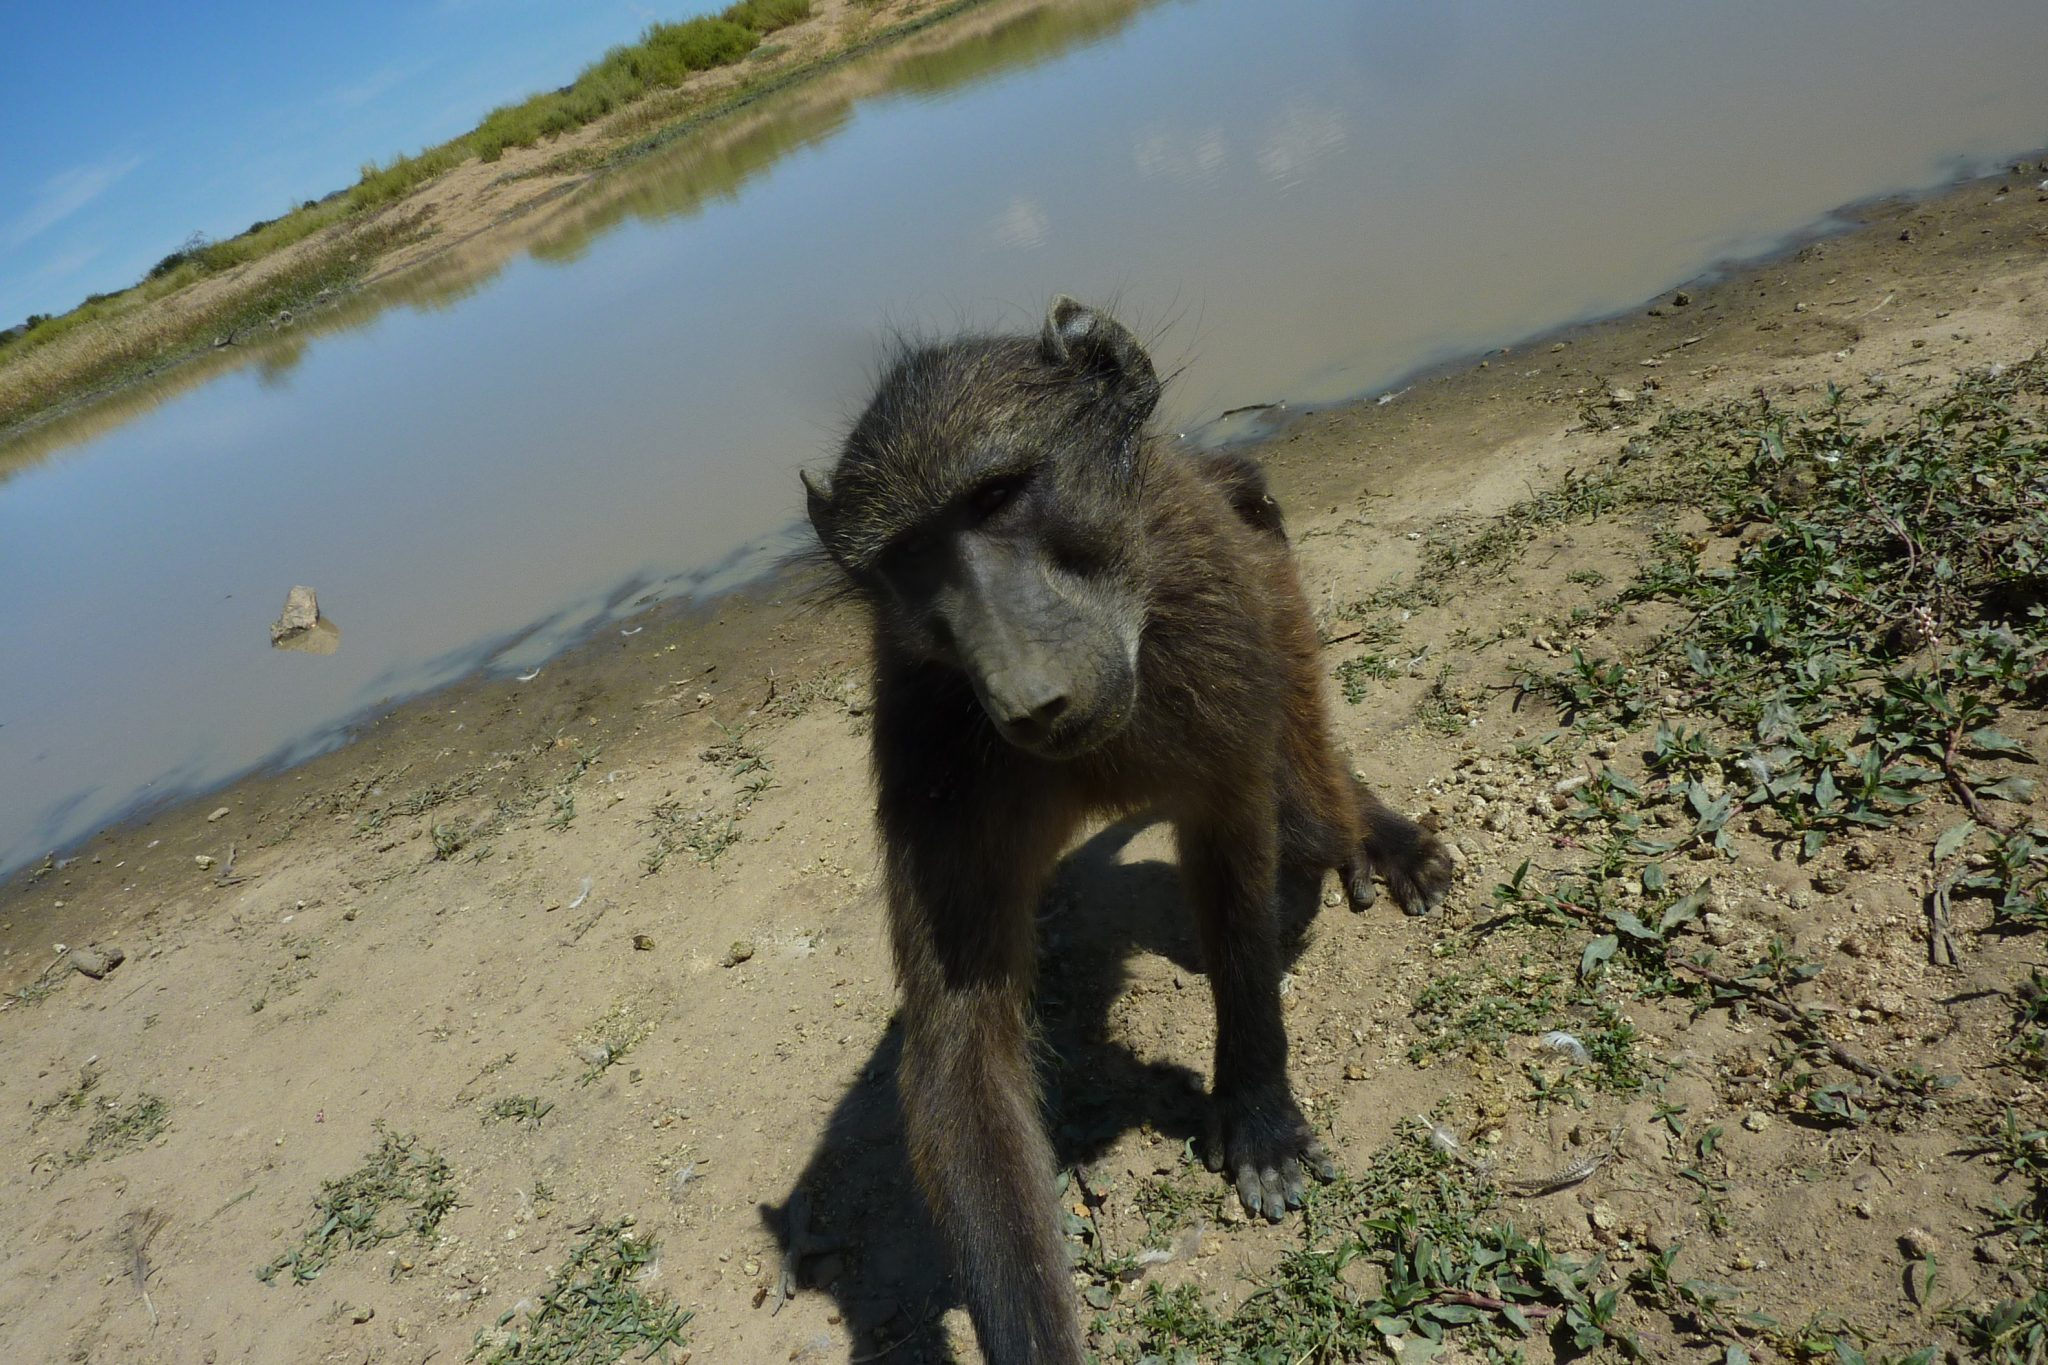 a baboon: photo courtesy of Maria Hart